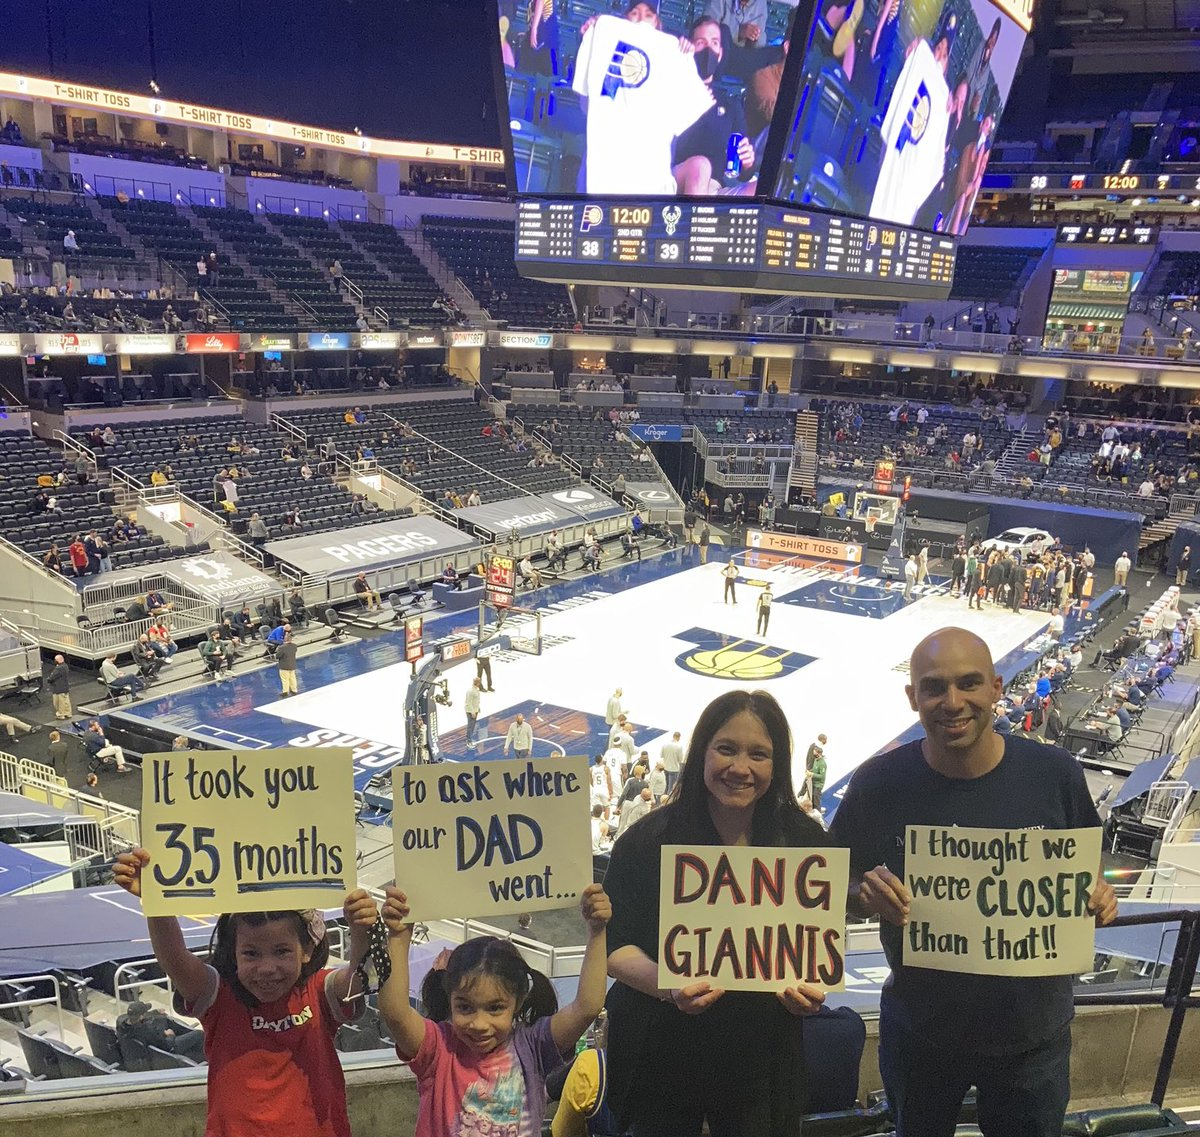 So @Giannis_An34 really wanted to know where I went and, well, here I am! First NBA game since last March in Denver. I enlisted my family to send our own message back to Giannis. 😂 https://t.co/pLcF7nCqEe